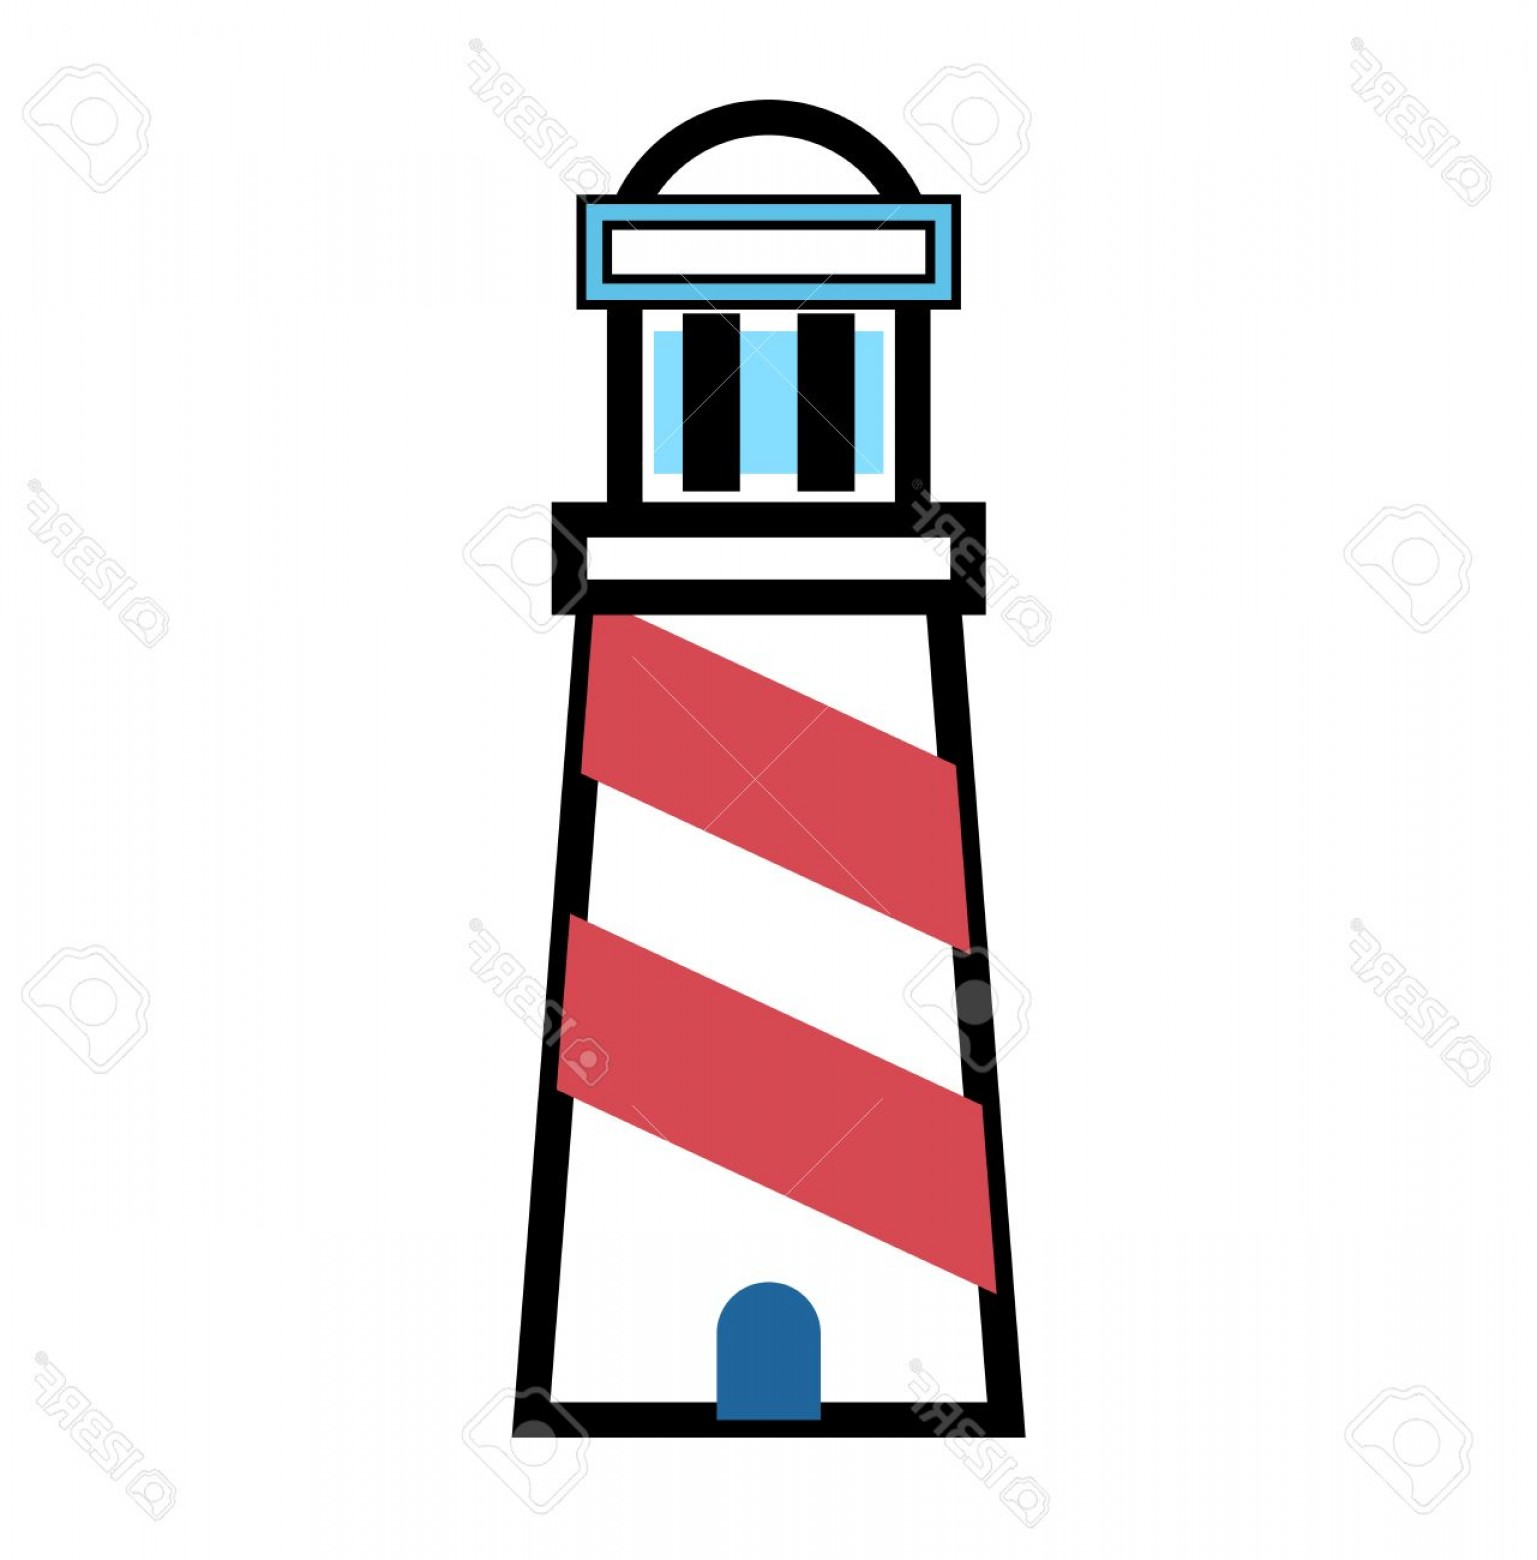 Jupiter Lighthouse Vector: Photovector Cartoon Flat Lighthouse Icon Searchlight Tower For Maritime Navigation Guidance Ocean Beacon